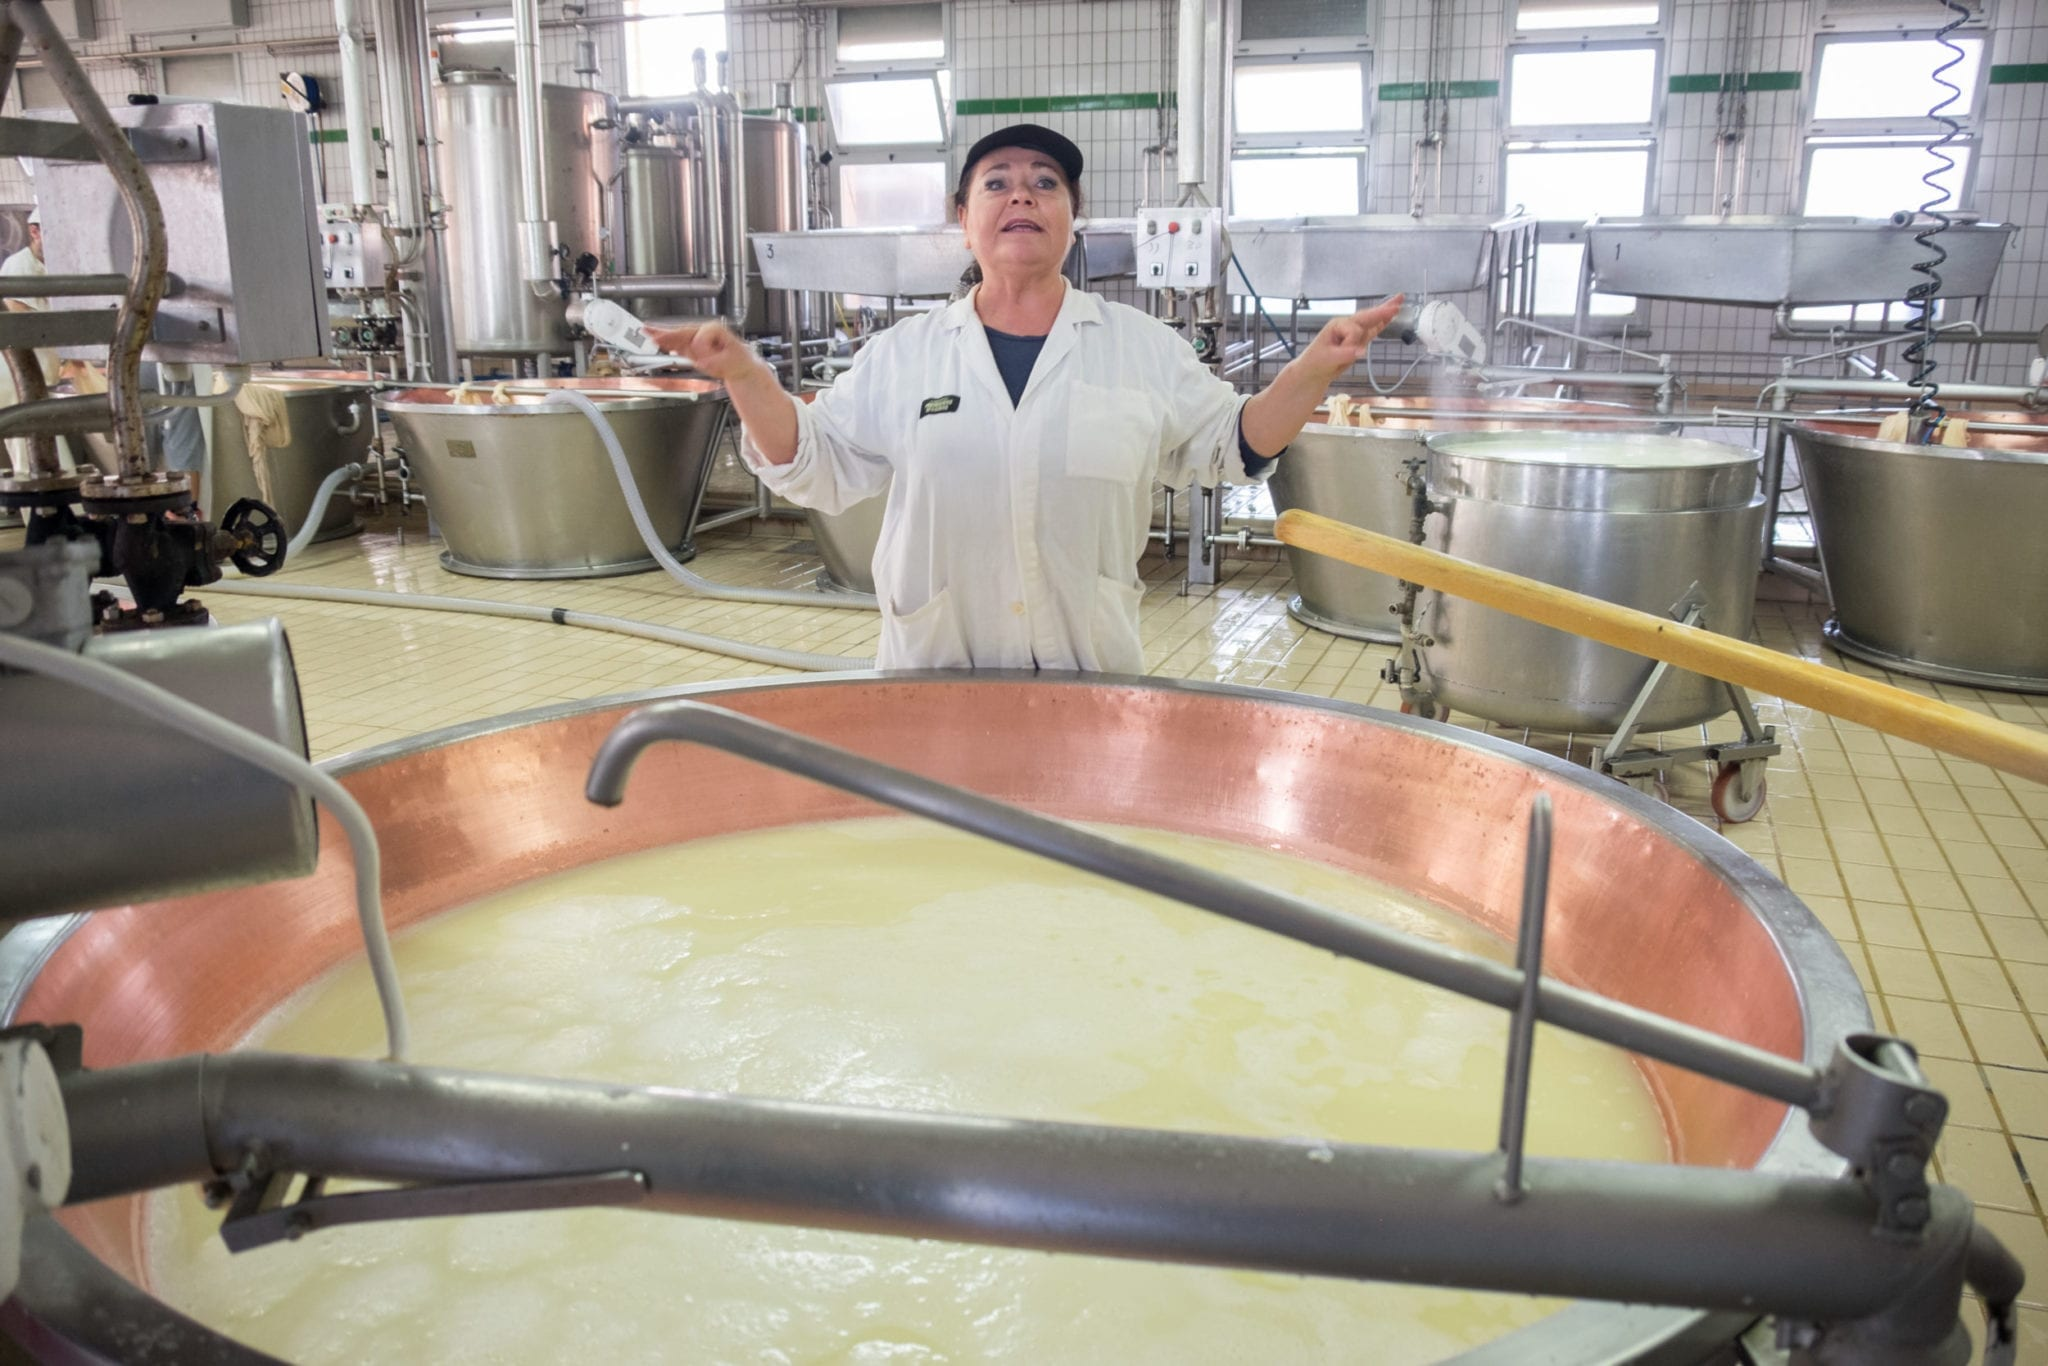 A woman in a smock stands in front of a liquid vat, spreading her arms and talking about cheese.